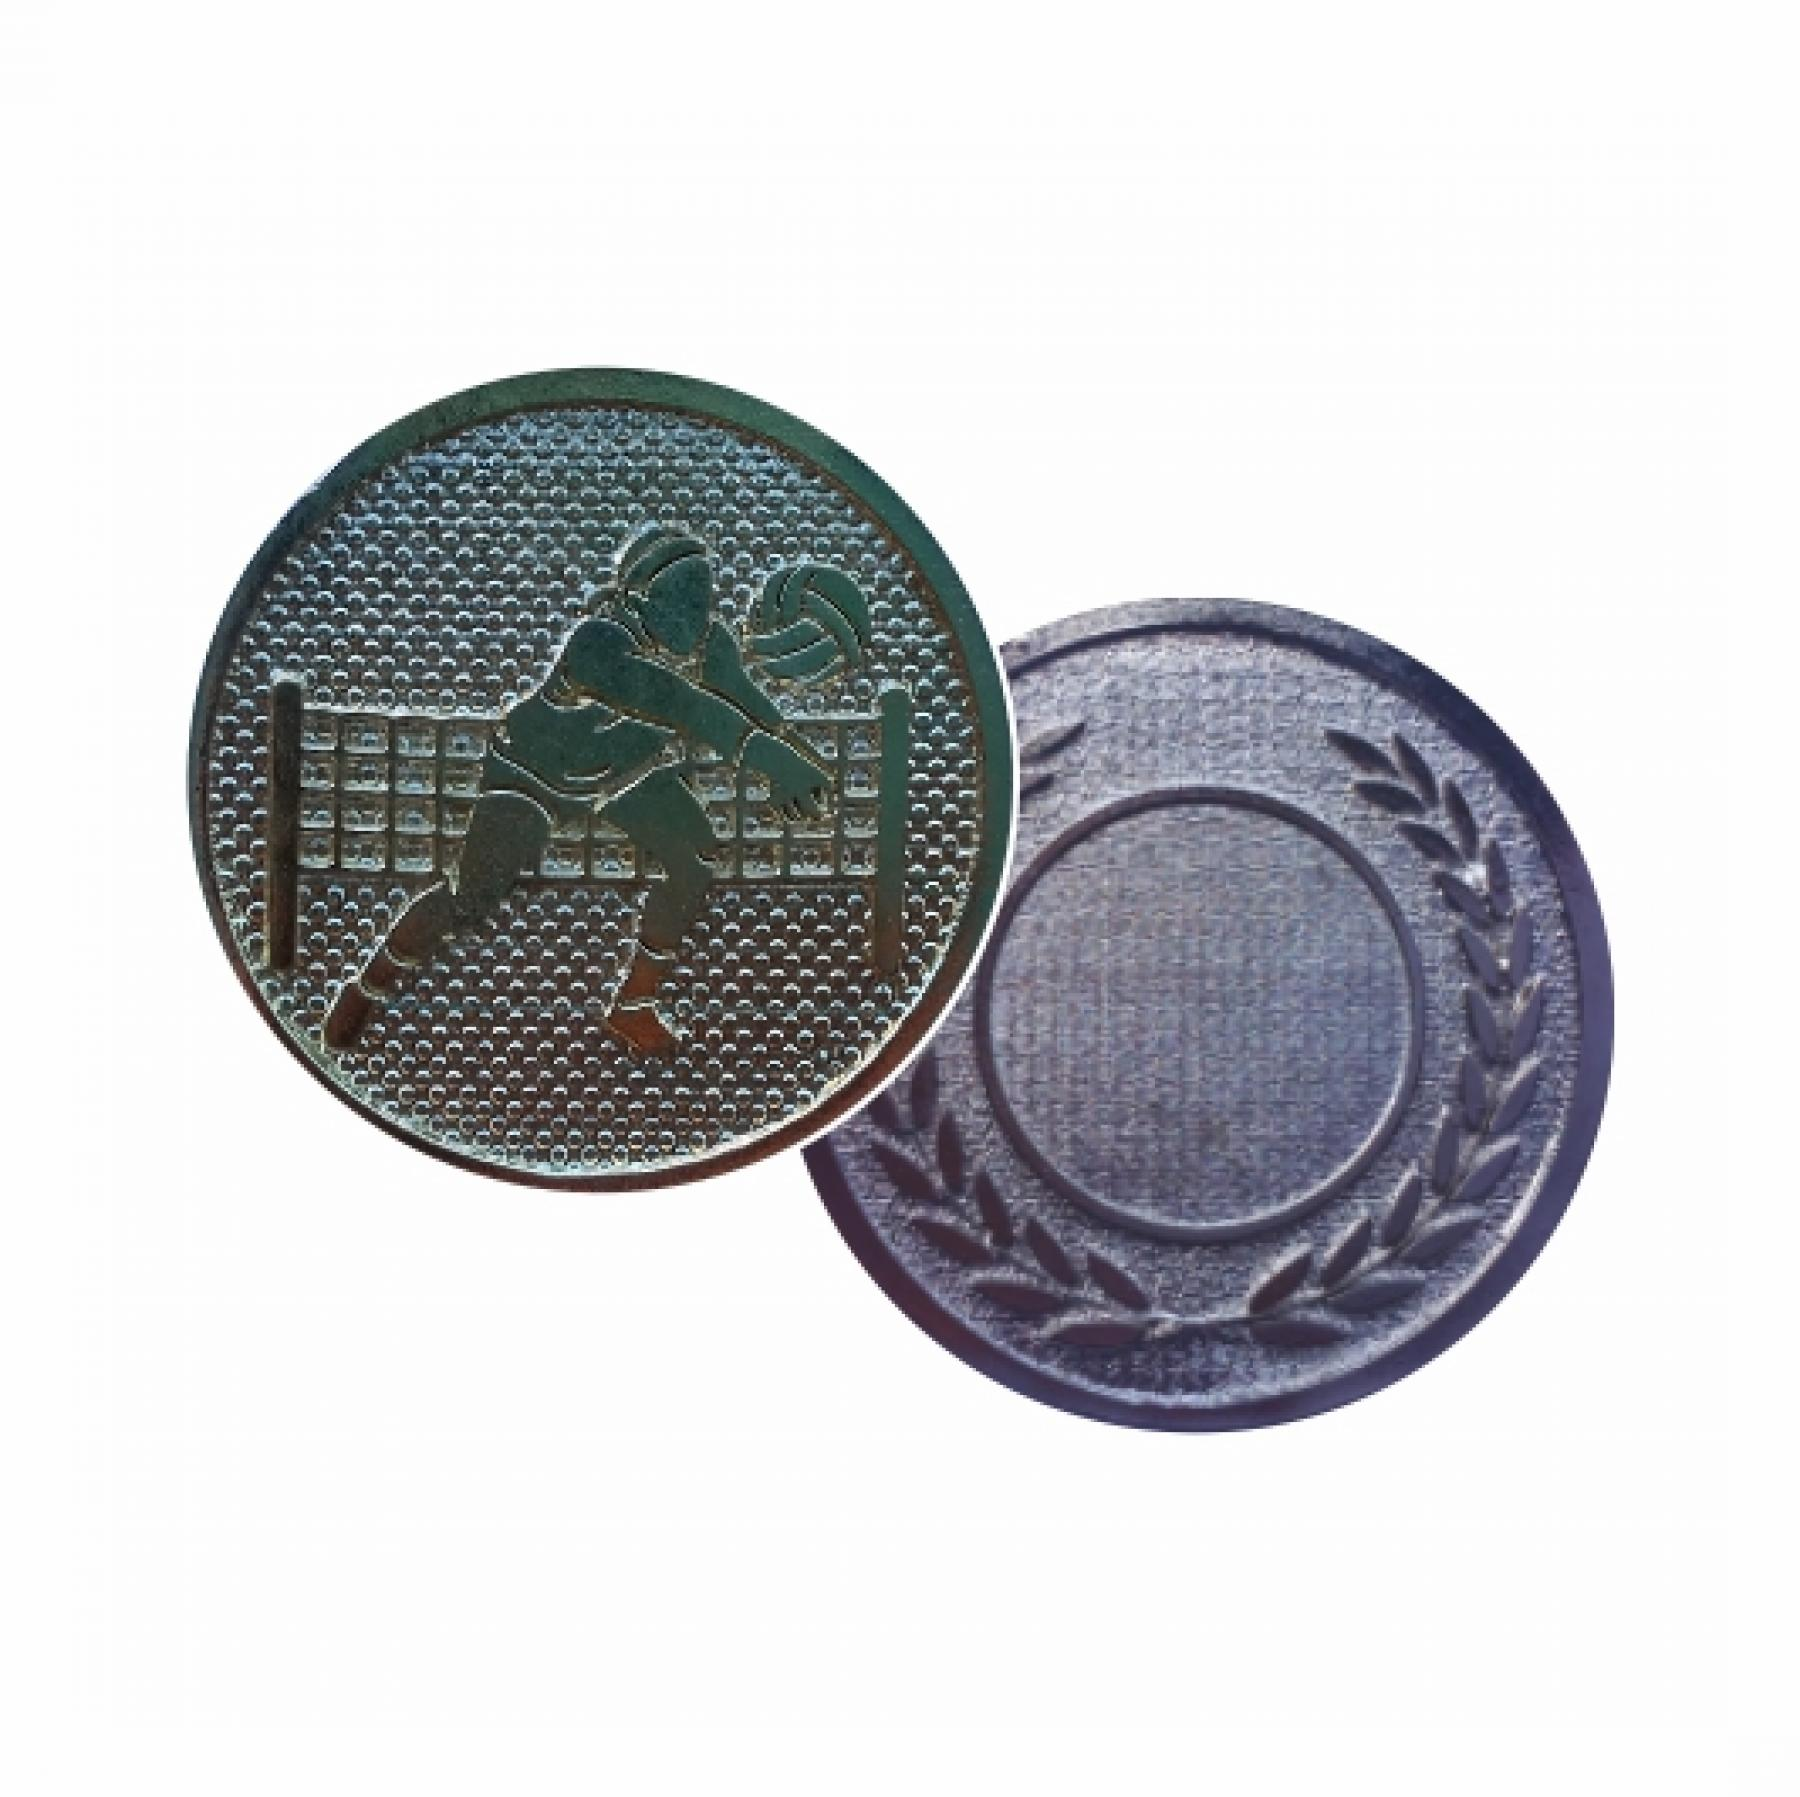 Xco Plated Medal Volleyball Silver